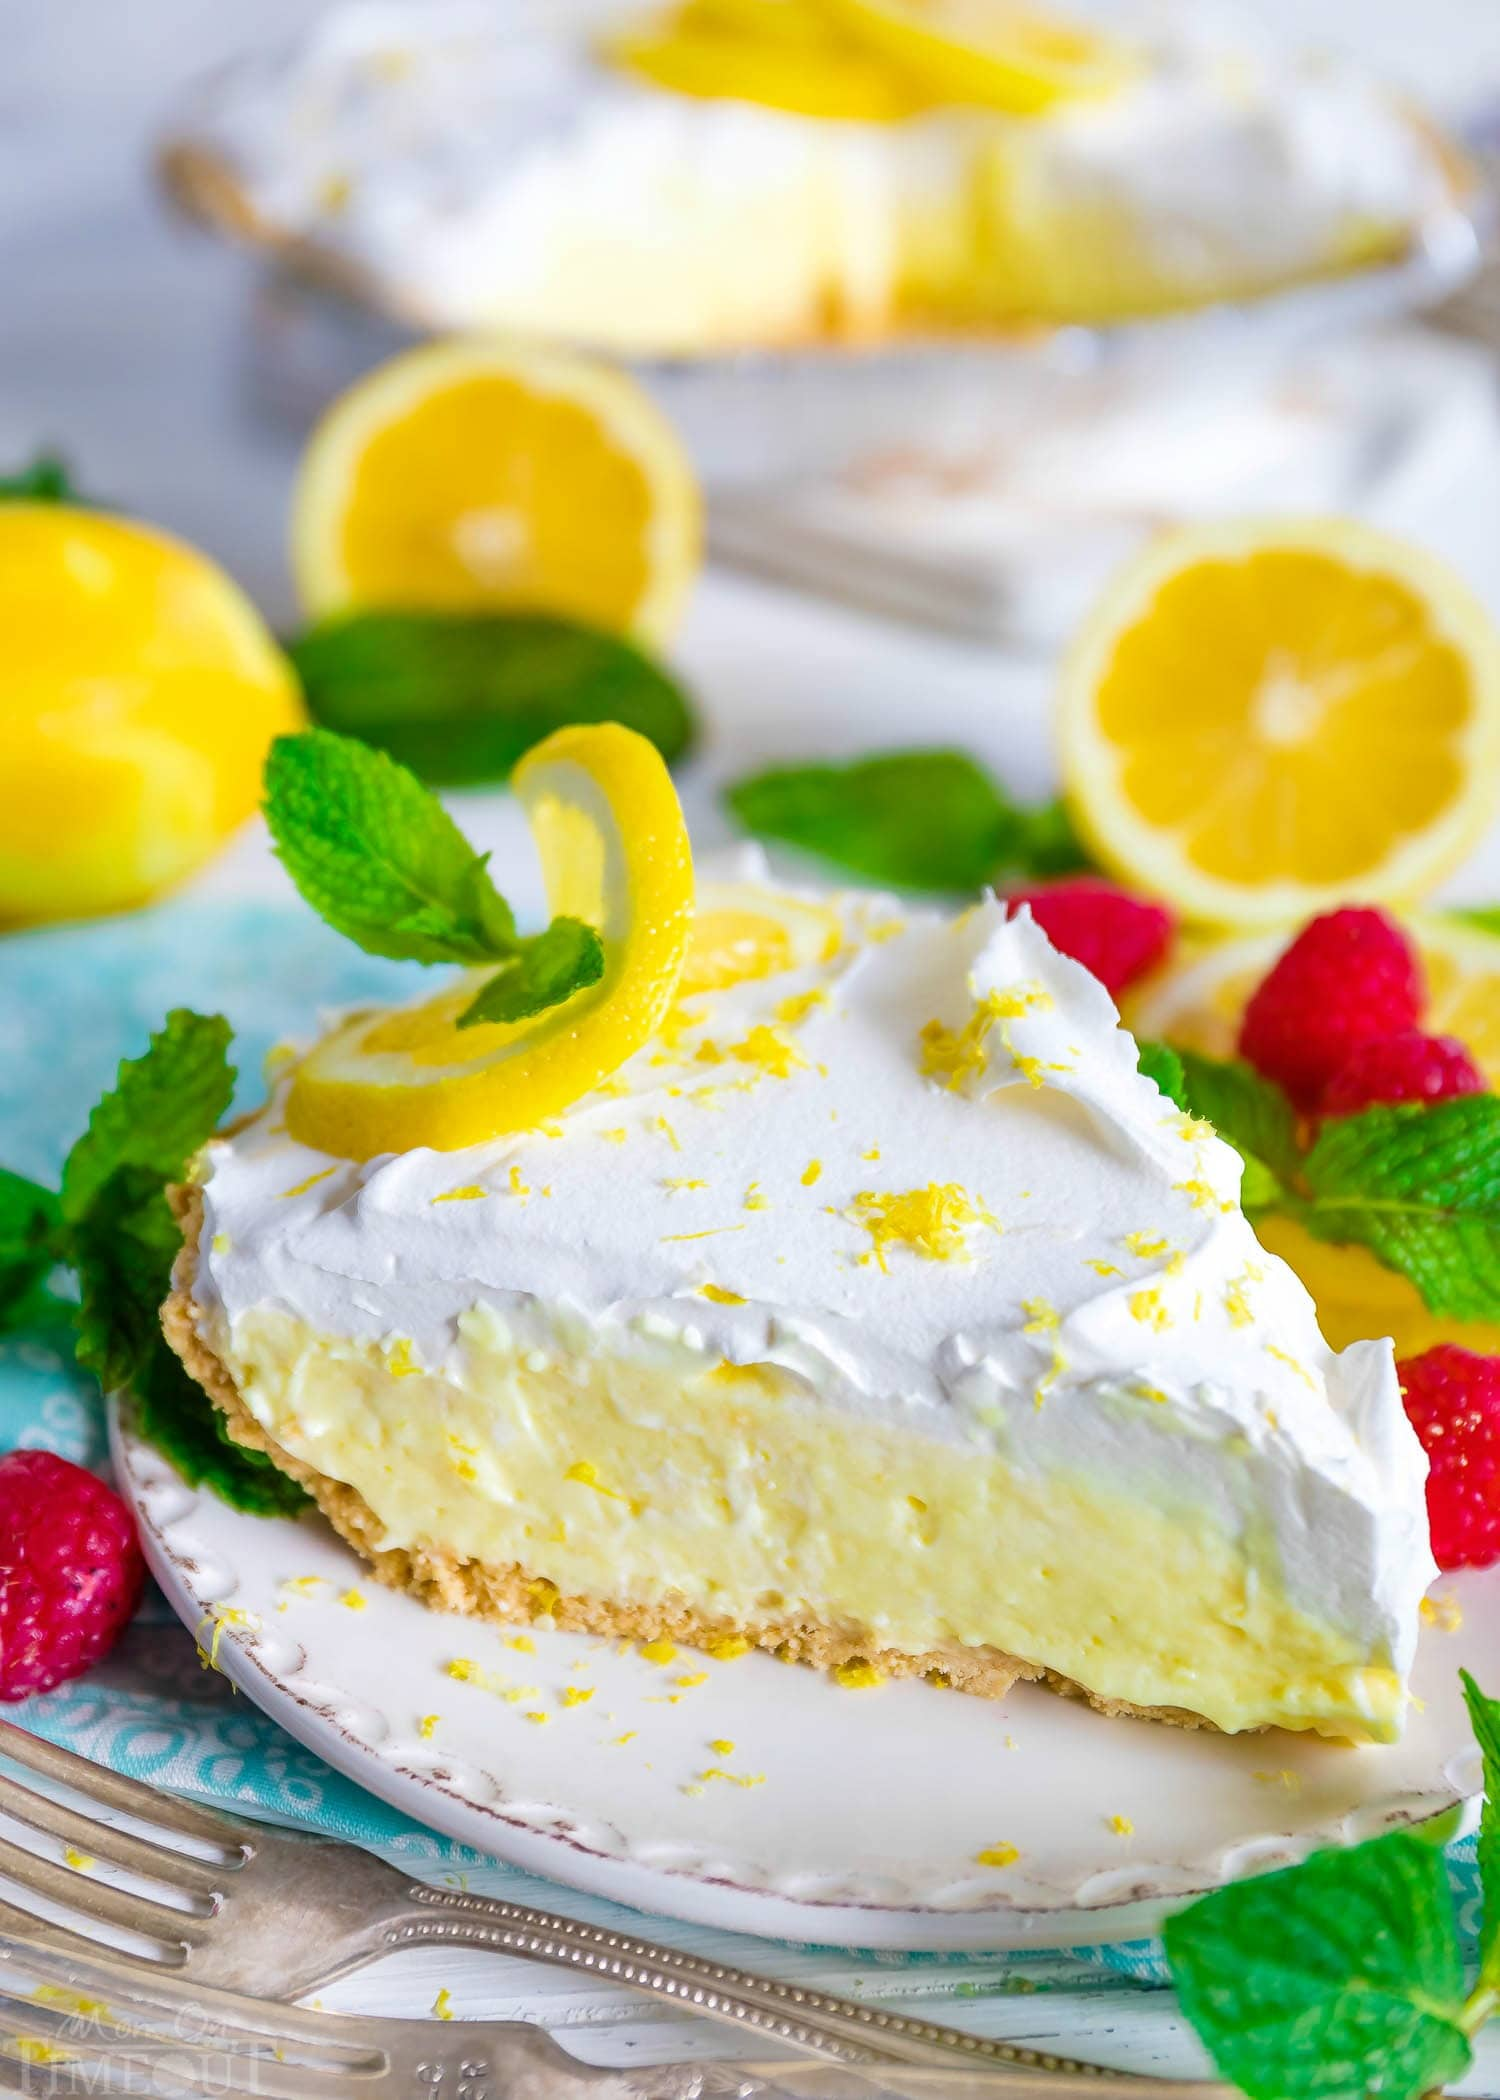 creamy-lemon-pie-filling-topped-with-whipped-cream-graham-cracker-crust